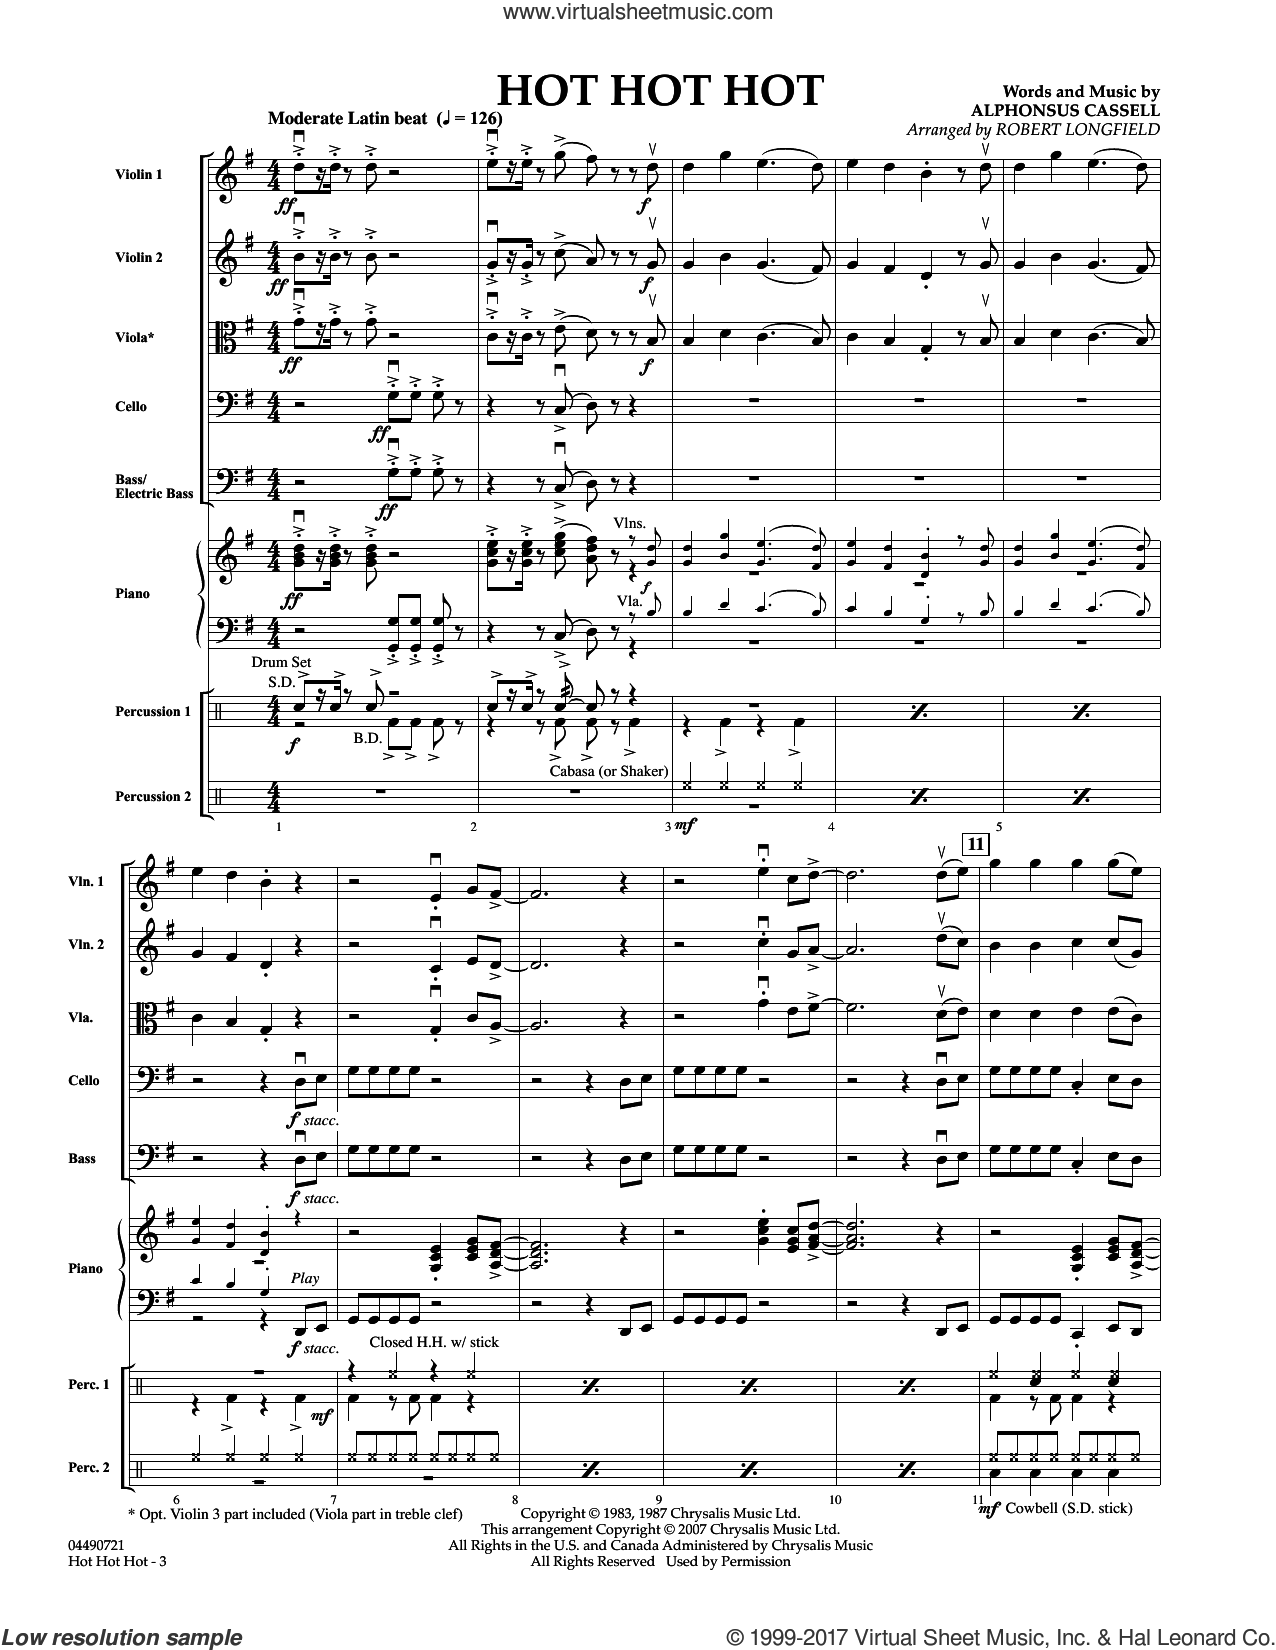 Hot Hot Hot (COMPLETE) sheet music for orchestra by Robert Longfield and Alphonsus Cassell, intermediate skill level